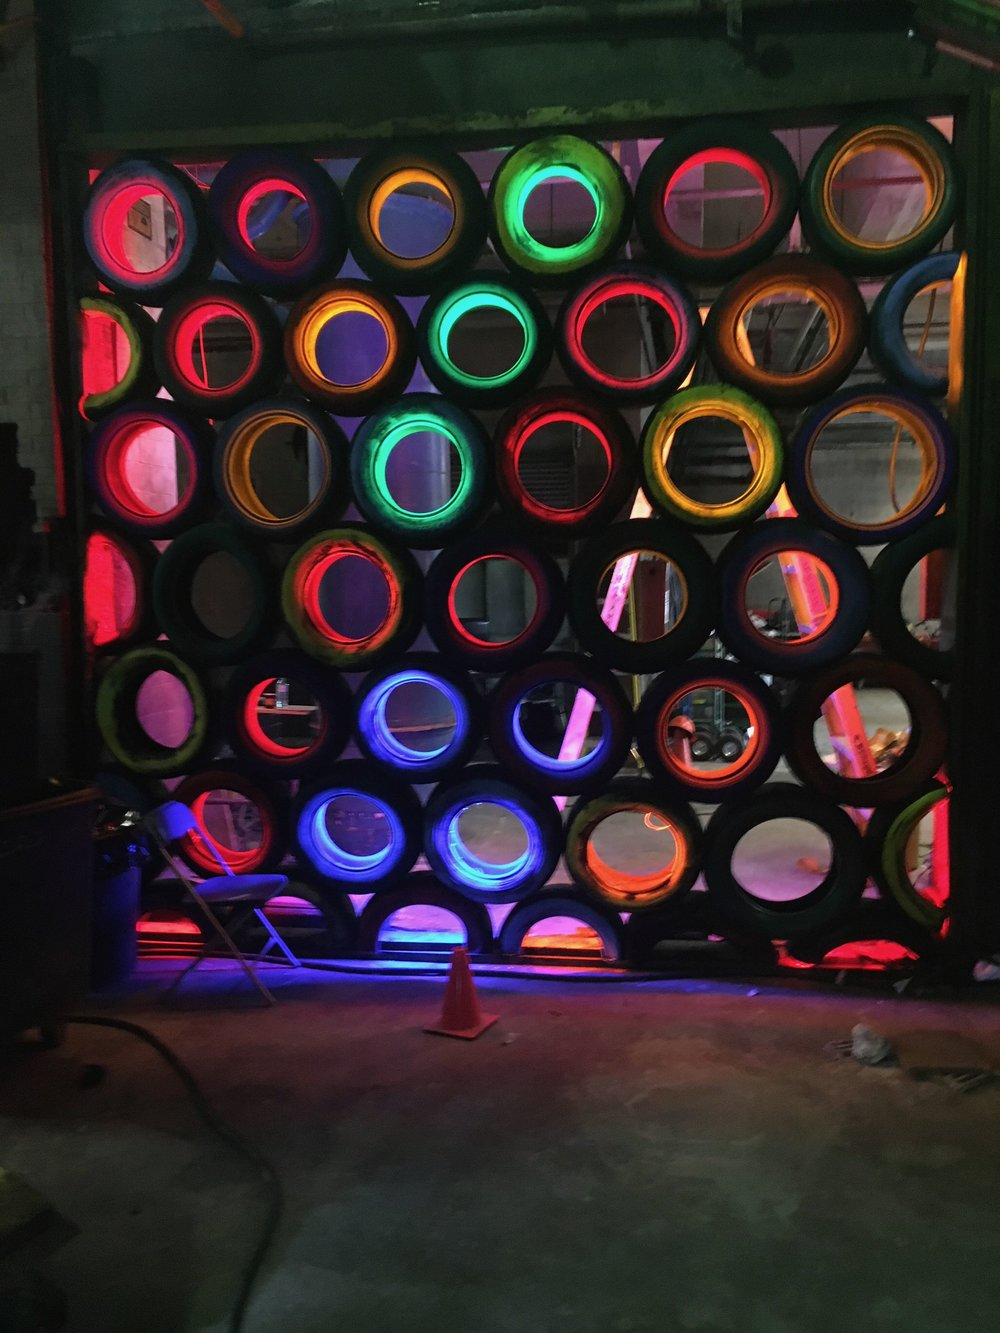 The tire wall had full spectrum LED's lining the interiors of each tire.